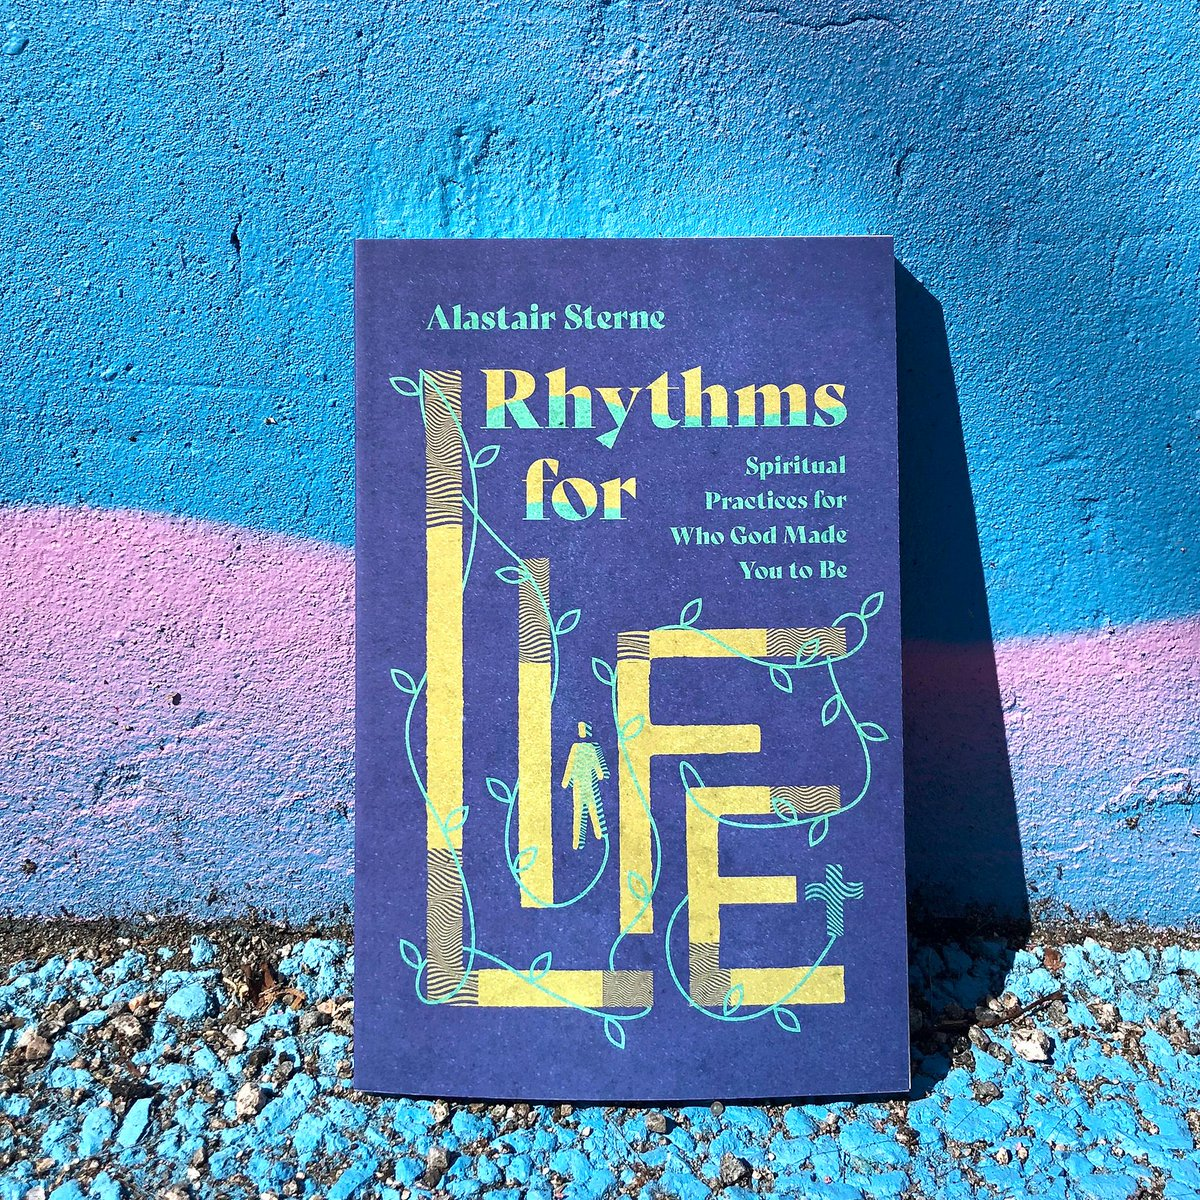 Start living the life that God has called you to live.   Pastor @alastairsterne wrote 'Rhythms for Life' with the hopes of helping you discover spiritual practices that bring you closer to who God made you to be.   Order #RhythmsForLife now: https://t.co/h9kBdur5wi https://t.co/KL6qUSWwXc